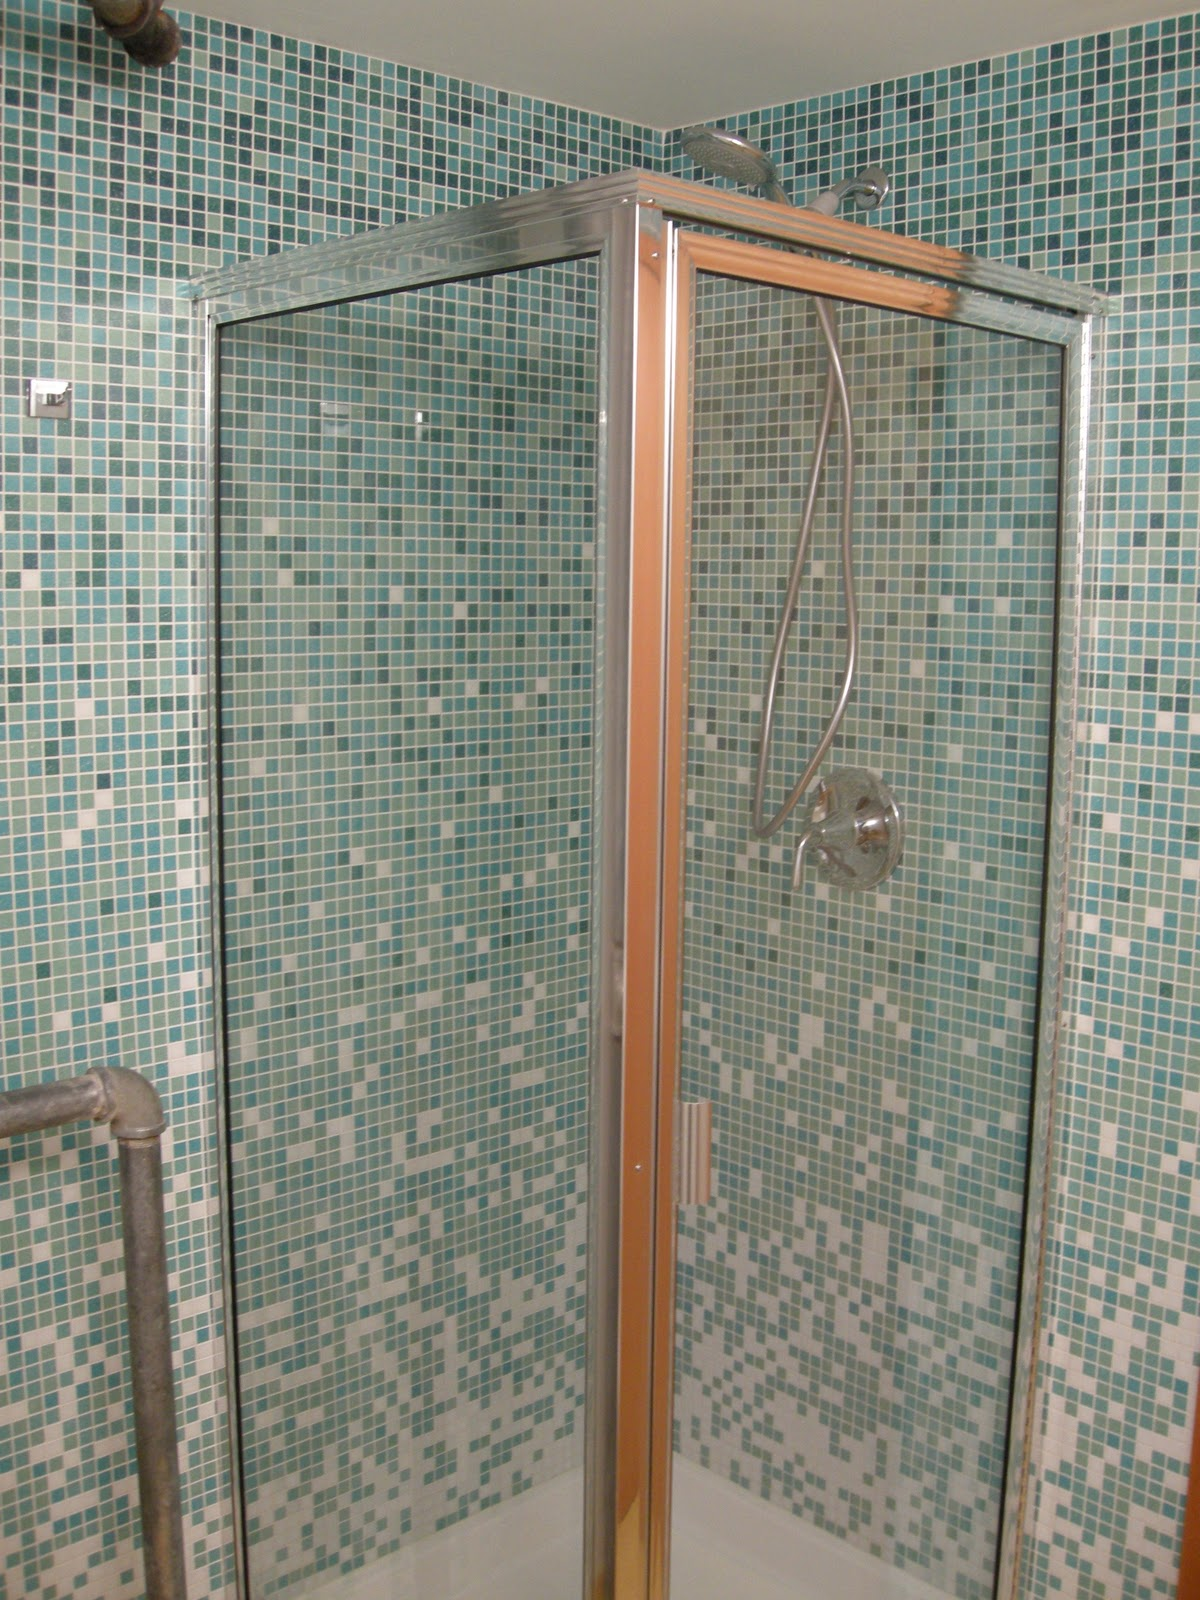 Handyman Doye: Open Look for a Small Space: Glass Tile Shower